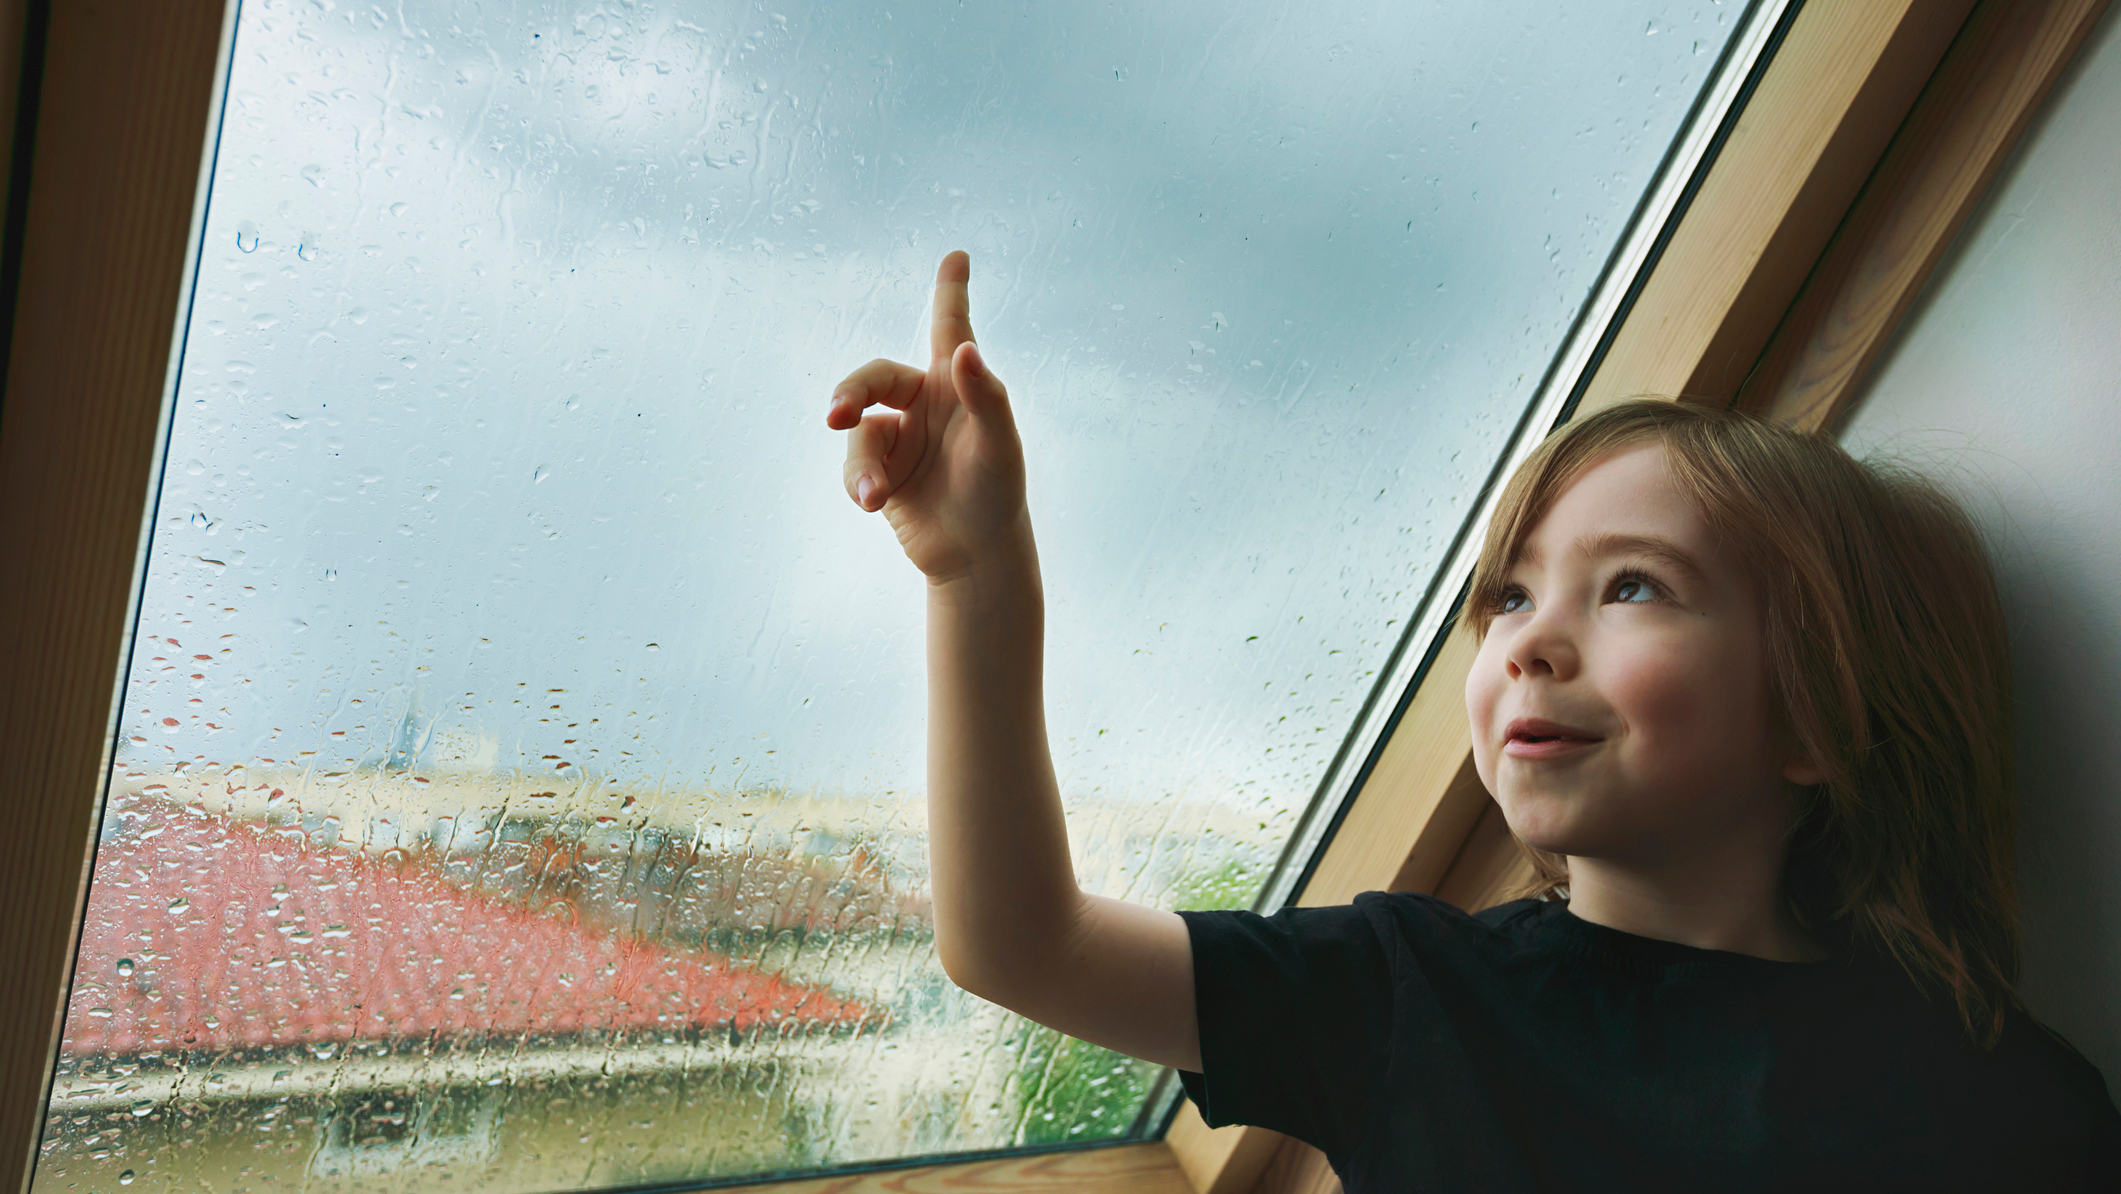 Child looks out the window at the rain